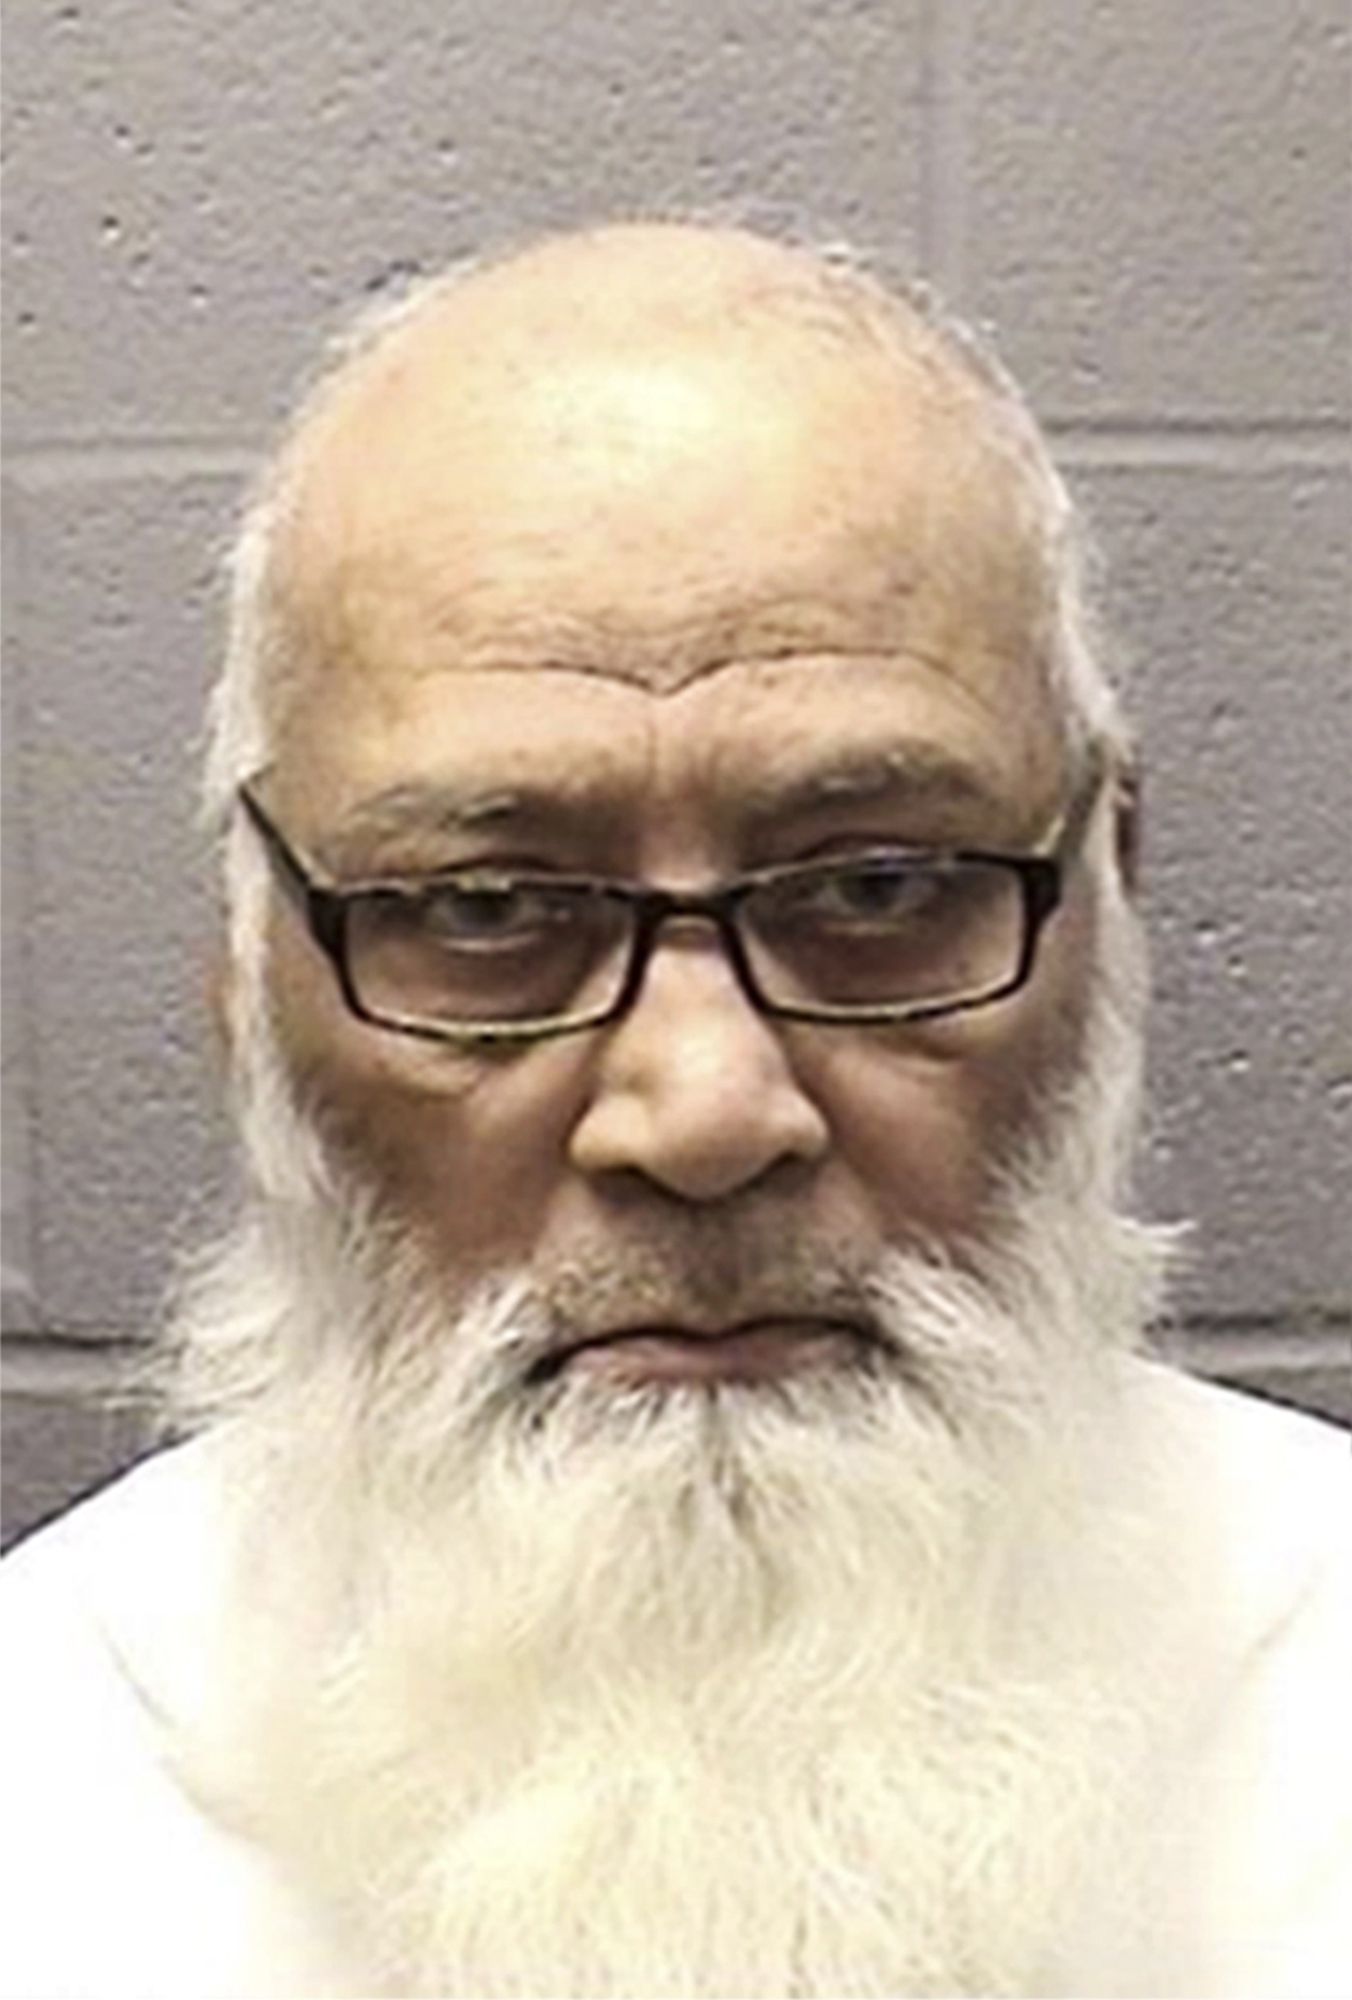 Mohammed Abdullah Saleem, a religious scholar and former Principal of the Islamic Institute of Education in Elgin, is charged with allegedly assaulting a female employee. (AP)